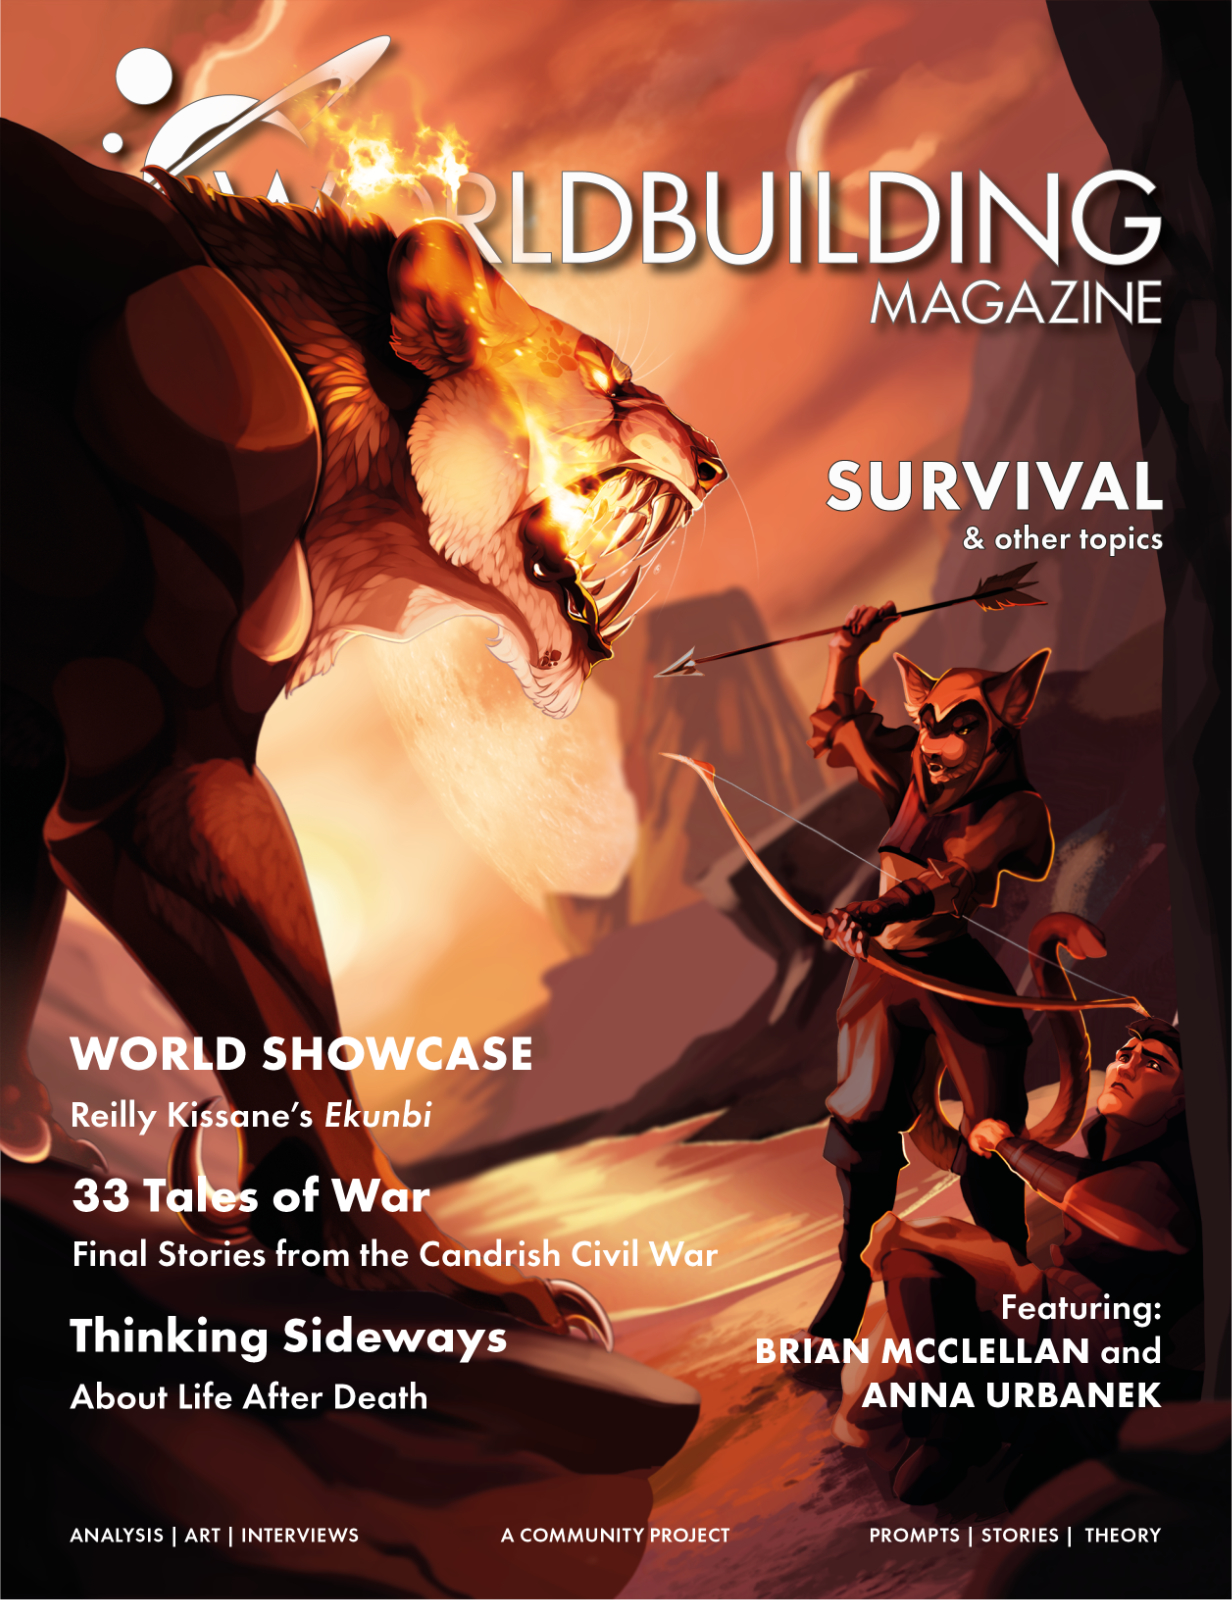 Worldbuilding Magazine Volume 4, Issue 6: Survival